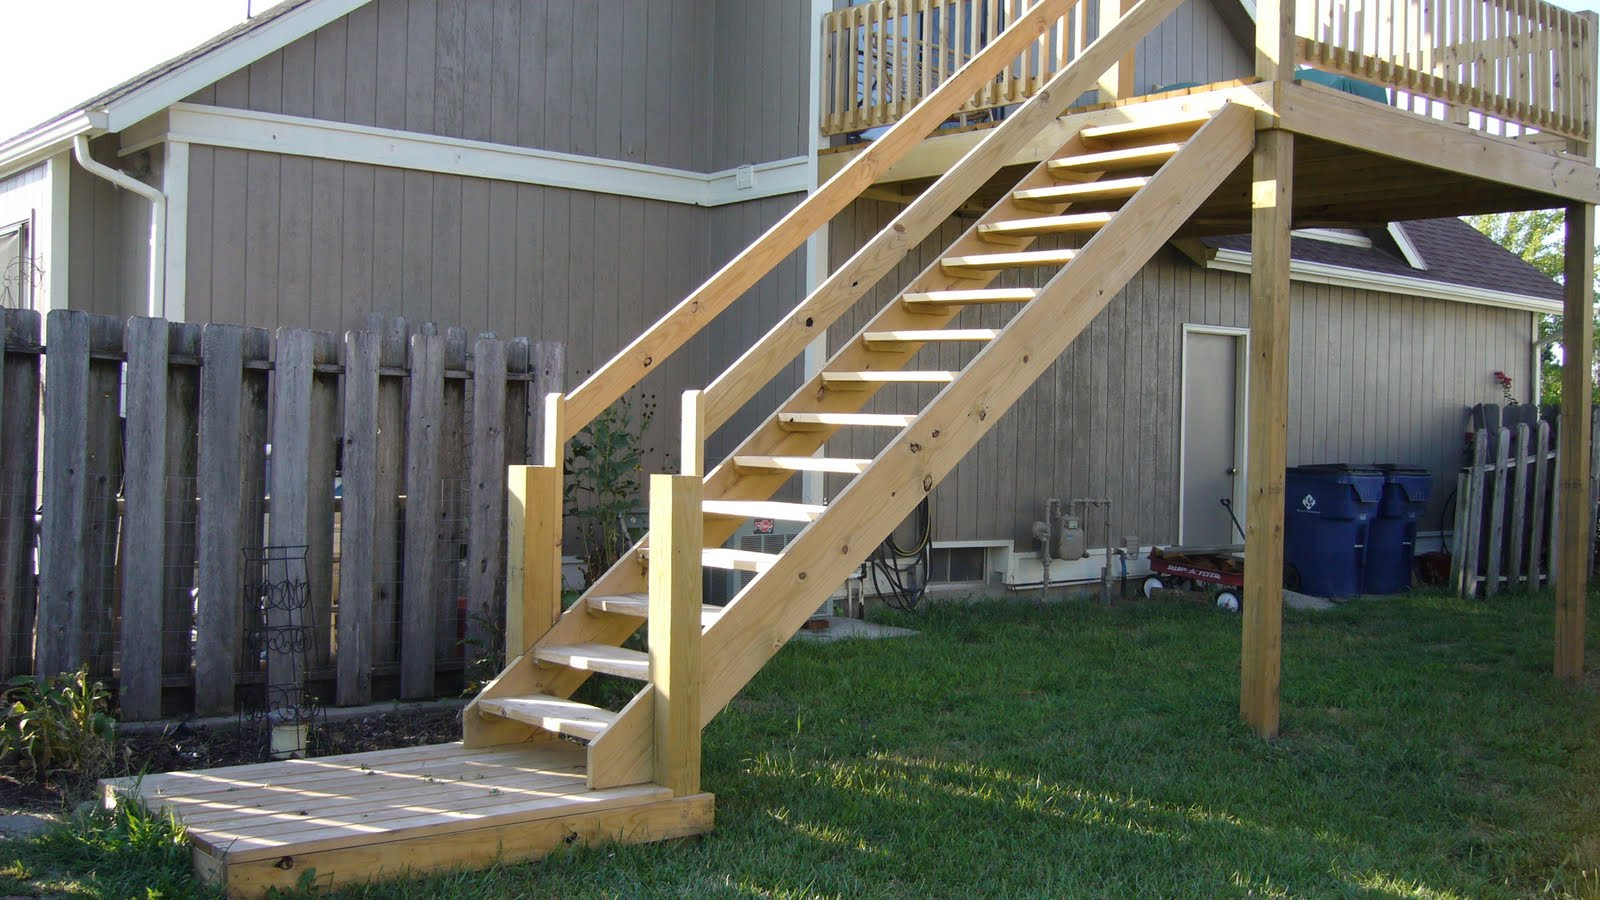 Central kansas home building repair exterior deck stair for Exterior stairs